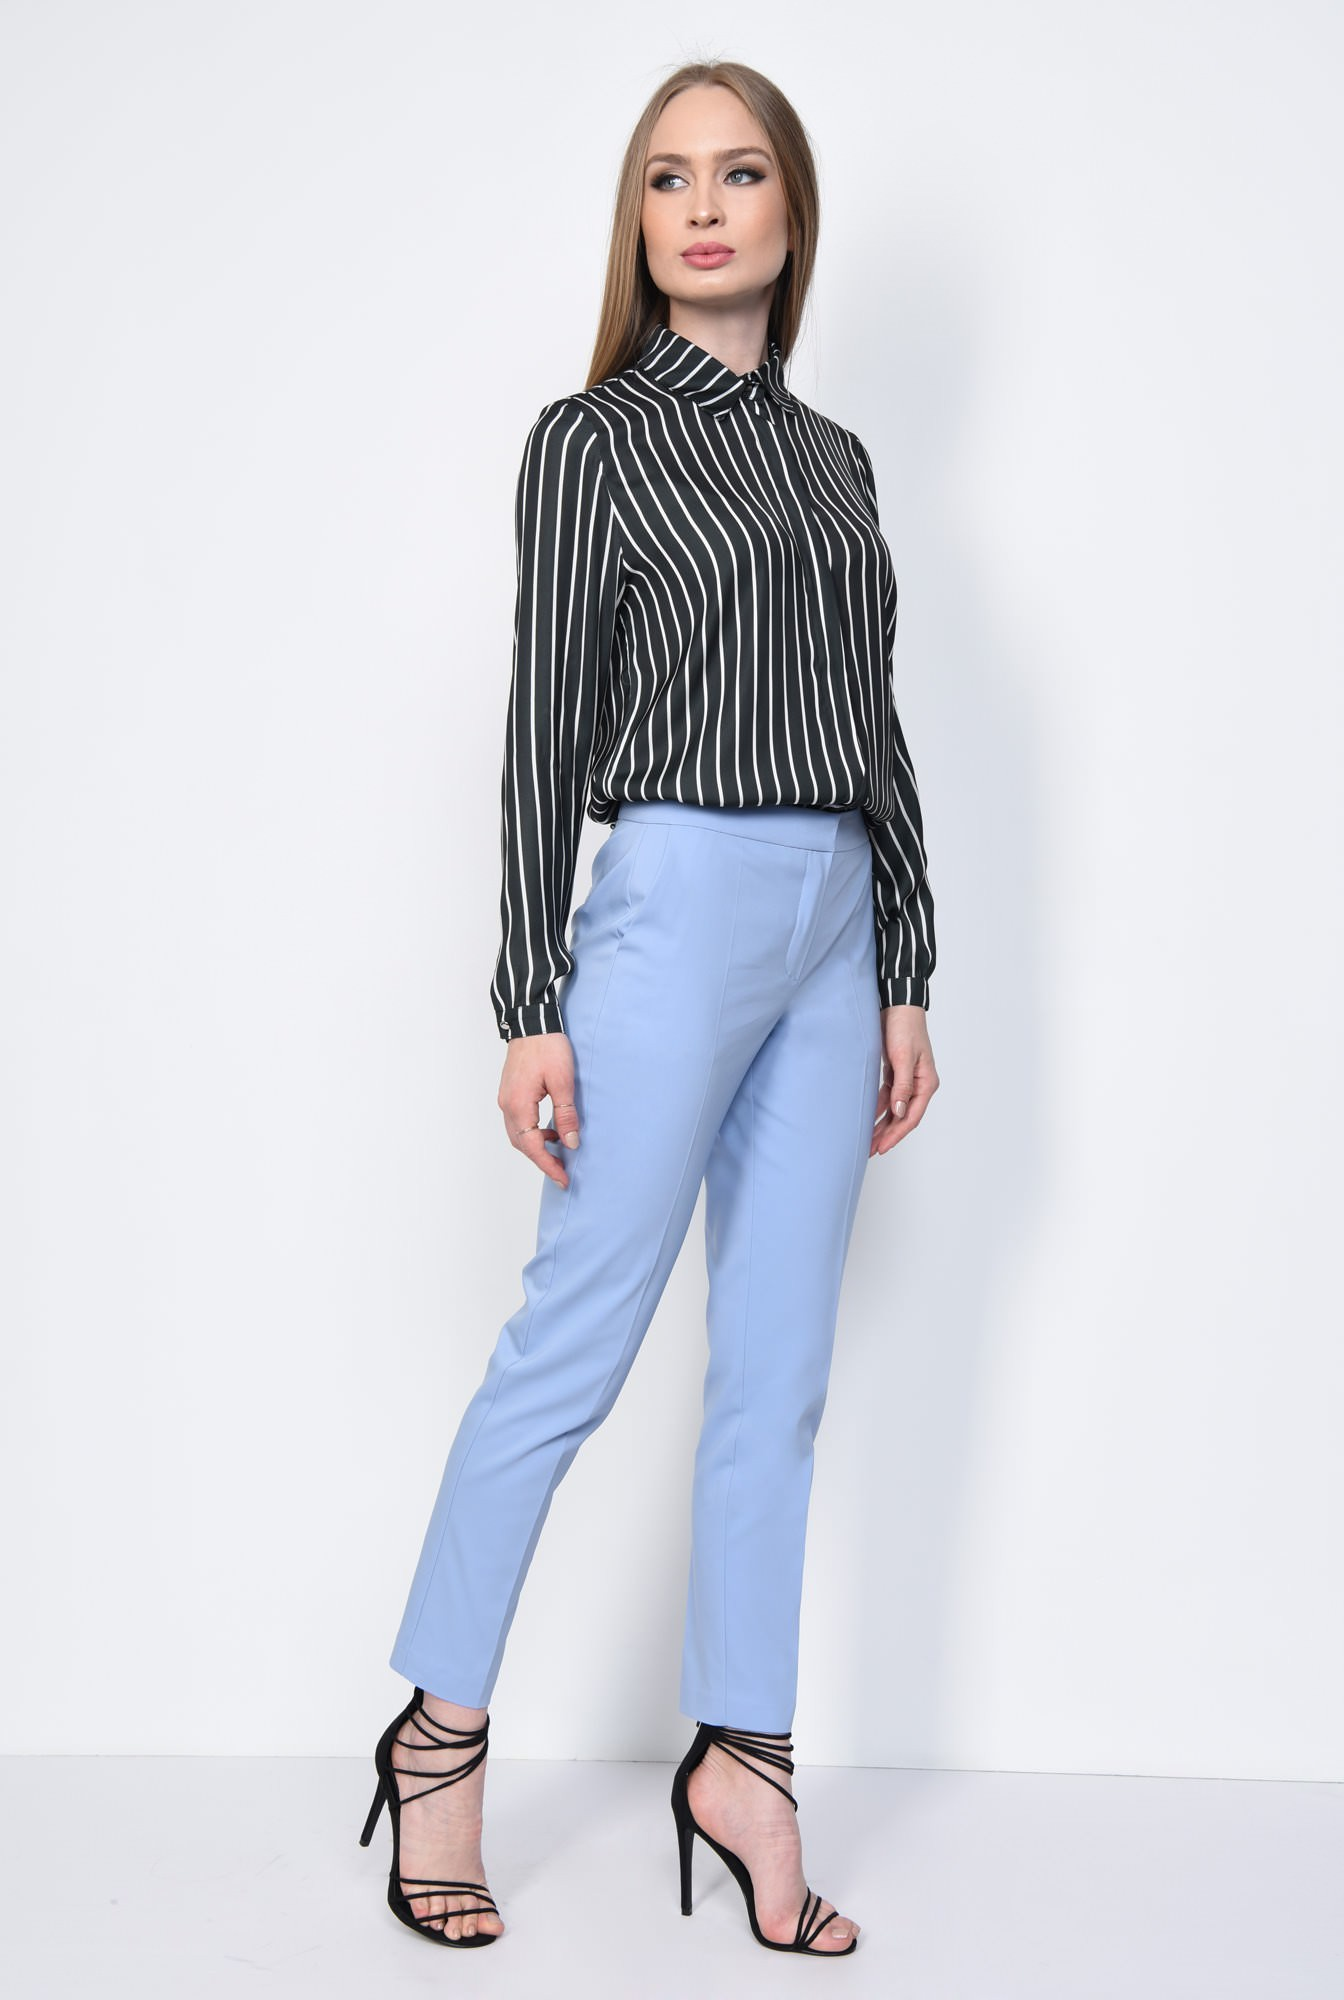 3 - PANTALON OFFICE CONIC PT 144-BLEU